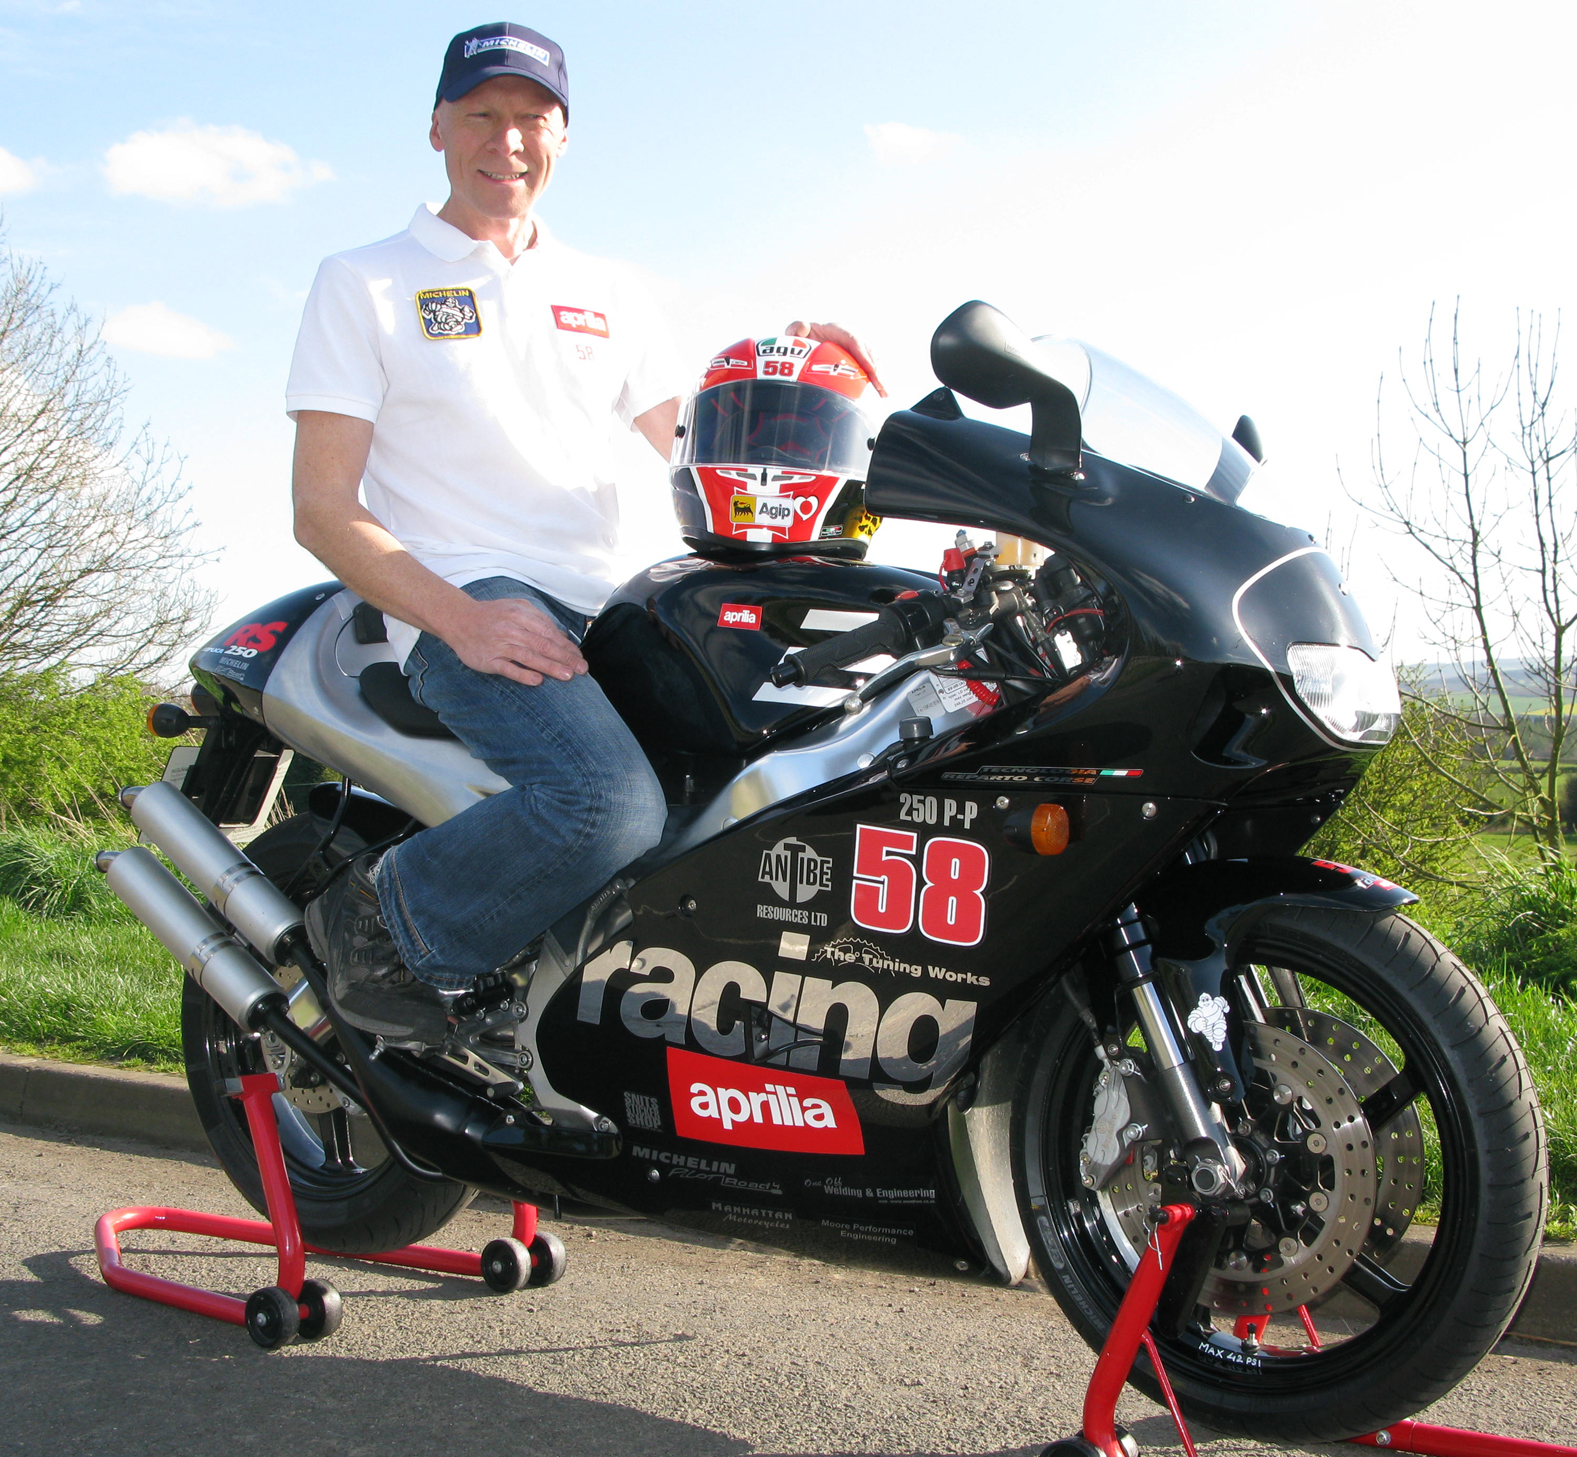 British rider attempting to break 250cc land speed record